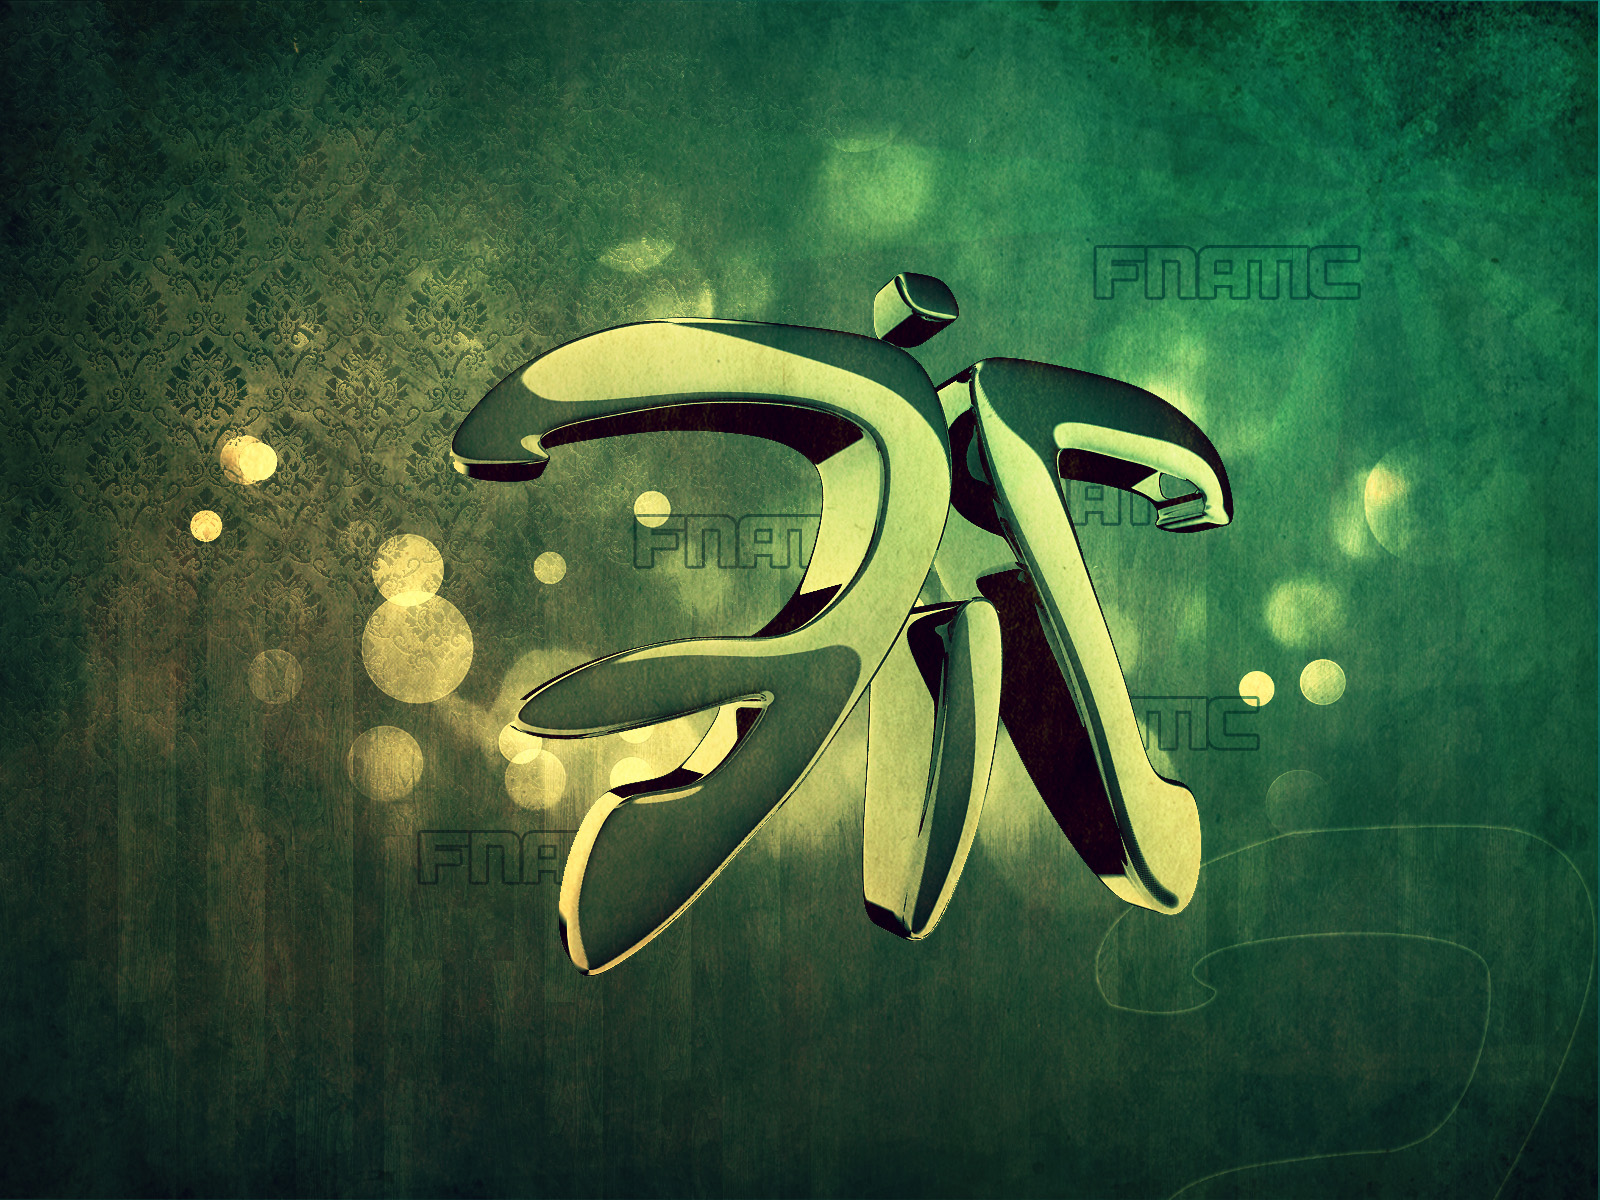 fnatic wallpaper3 from dinamit by dinamit956 on deviantart